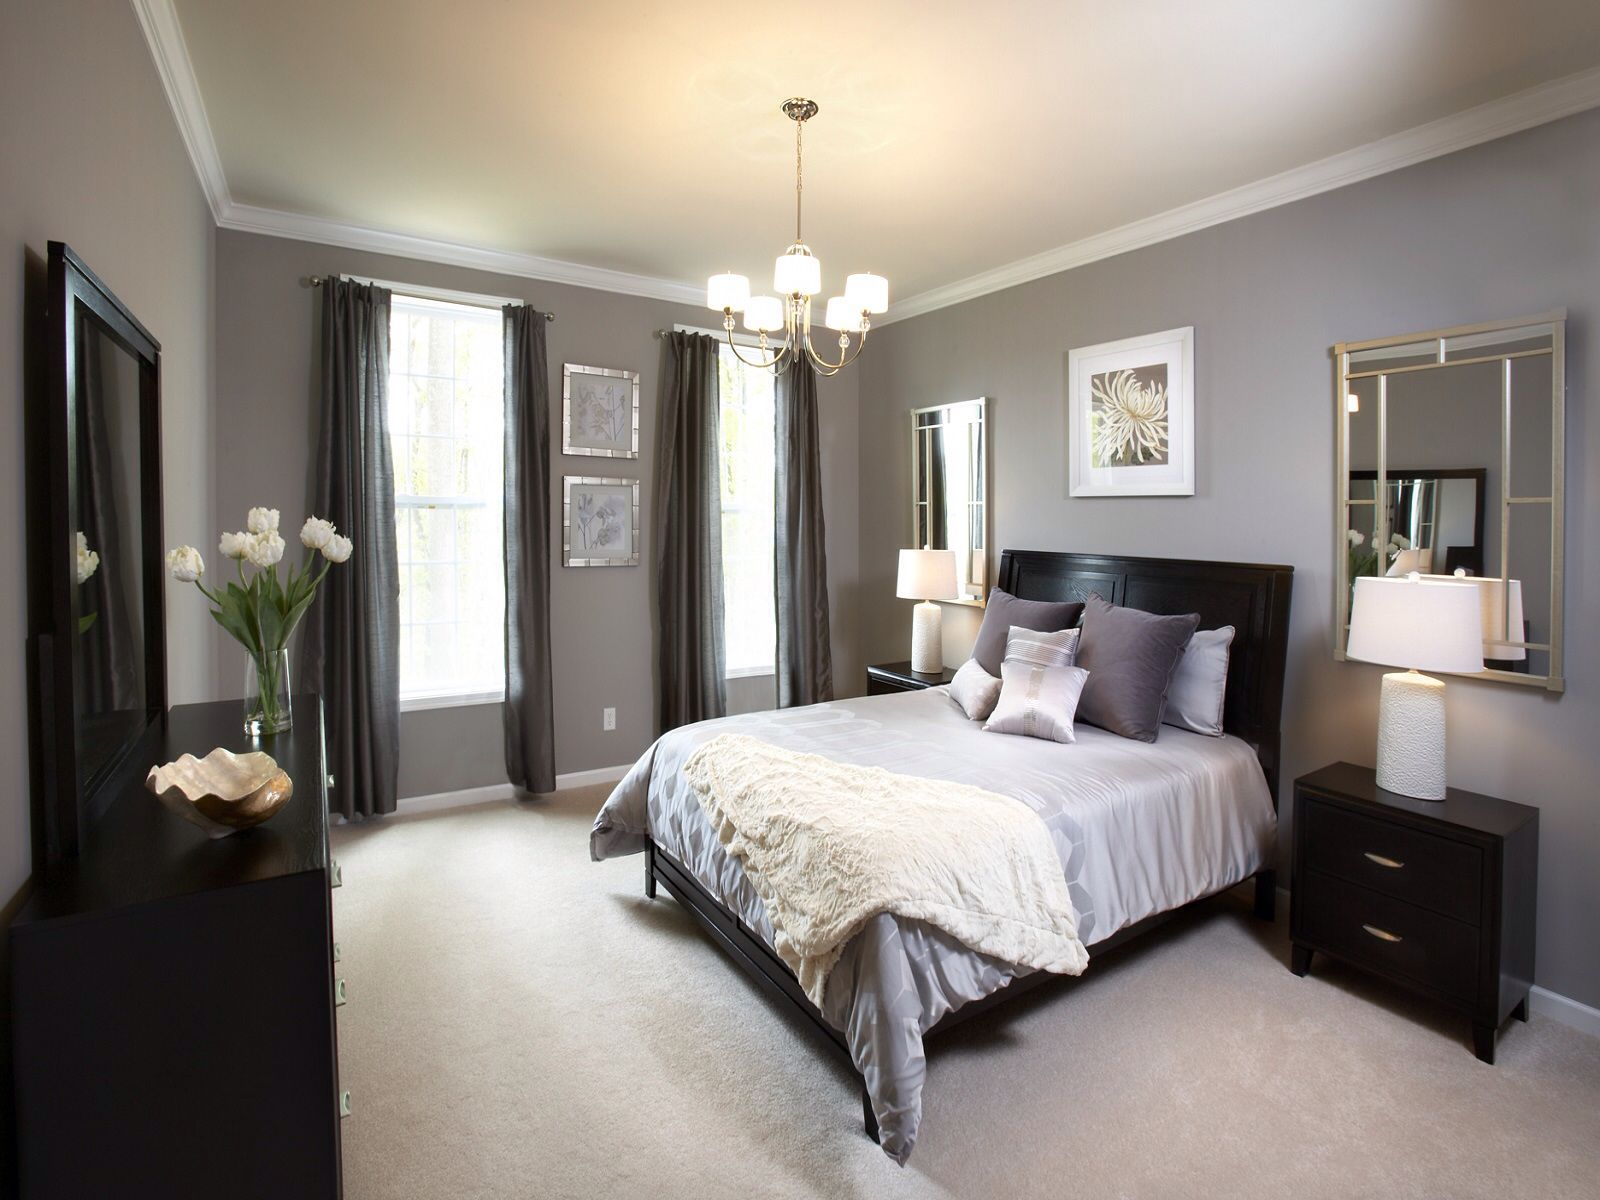 Pin By Heather Glover On For The Home Gray Master Bedroom Remodel Bedroom Master Bedrooms Decor